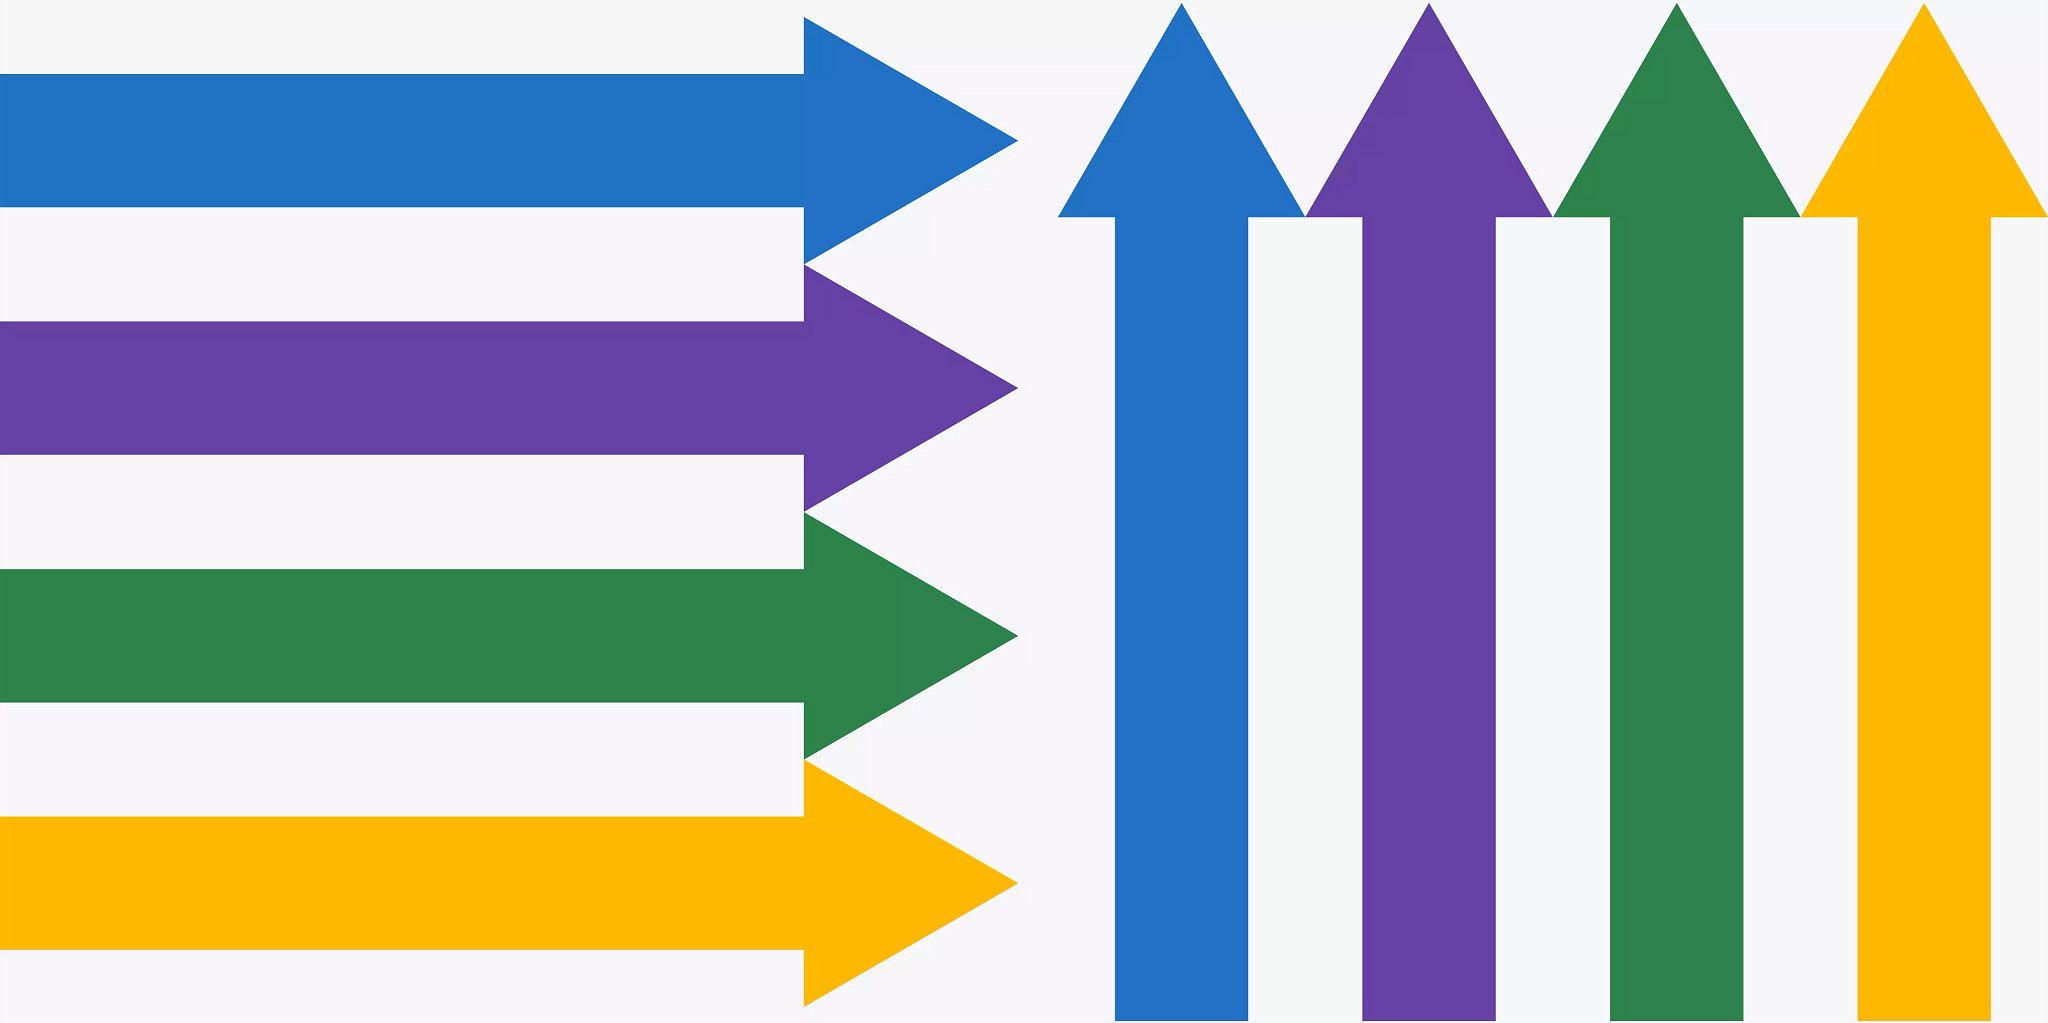 Four colorful, solid arrows stacked horizontally and pointing to the right starting at the left edge and ending in the middle. Followed by the same colorful arrows standing next to each other vertically, starting at the bottom of the graphic and pointing up.